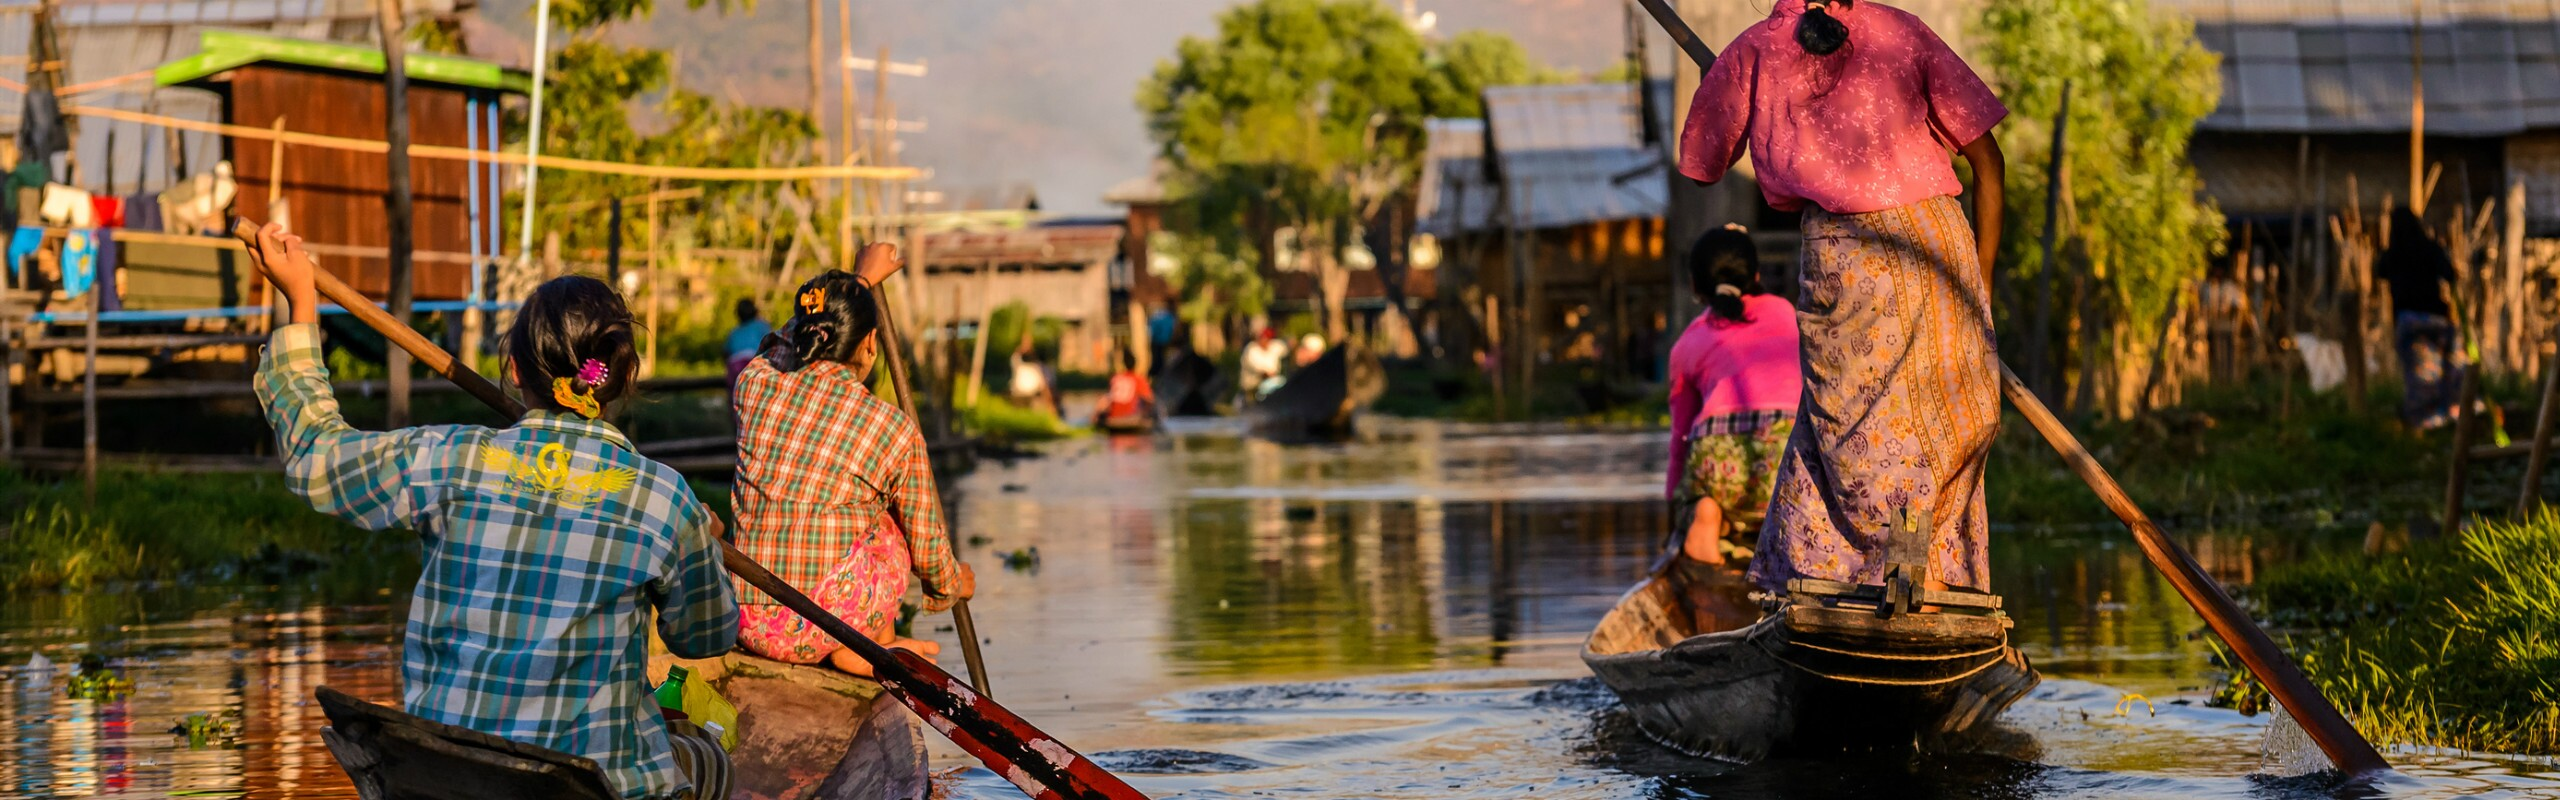 Top 9 Attractions at Inle Lake - Must See Attractions